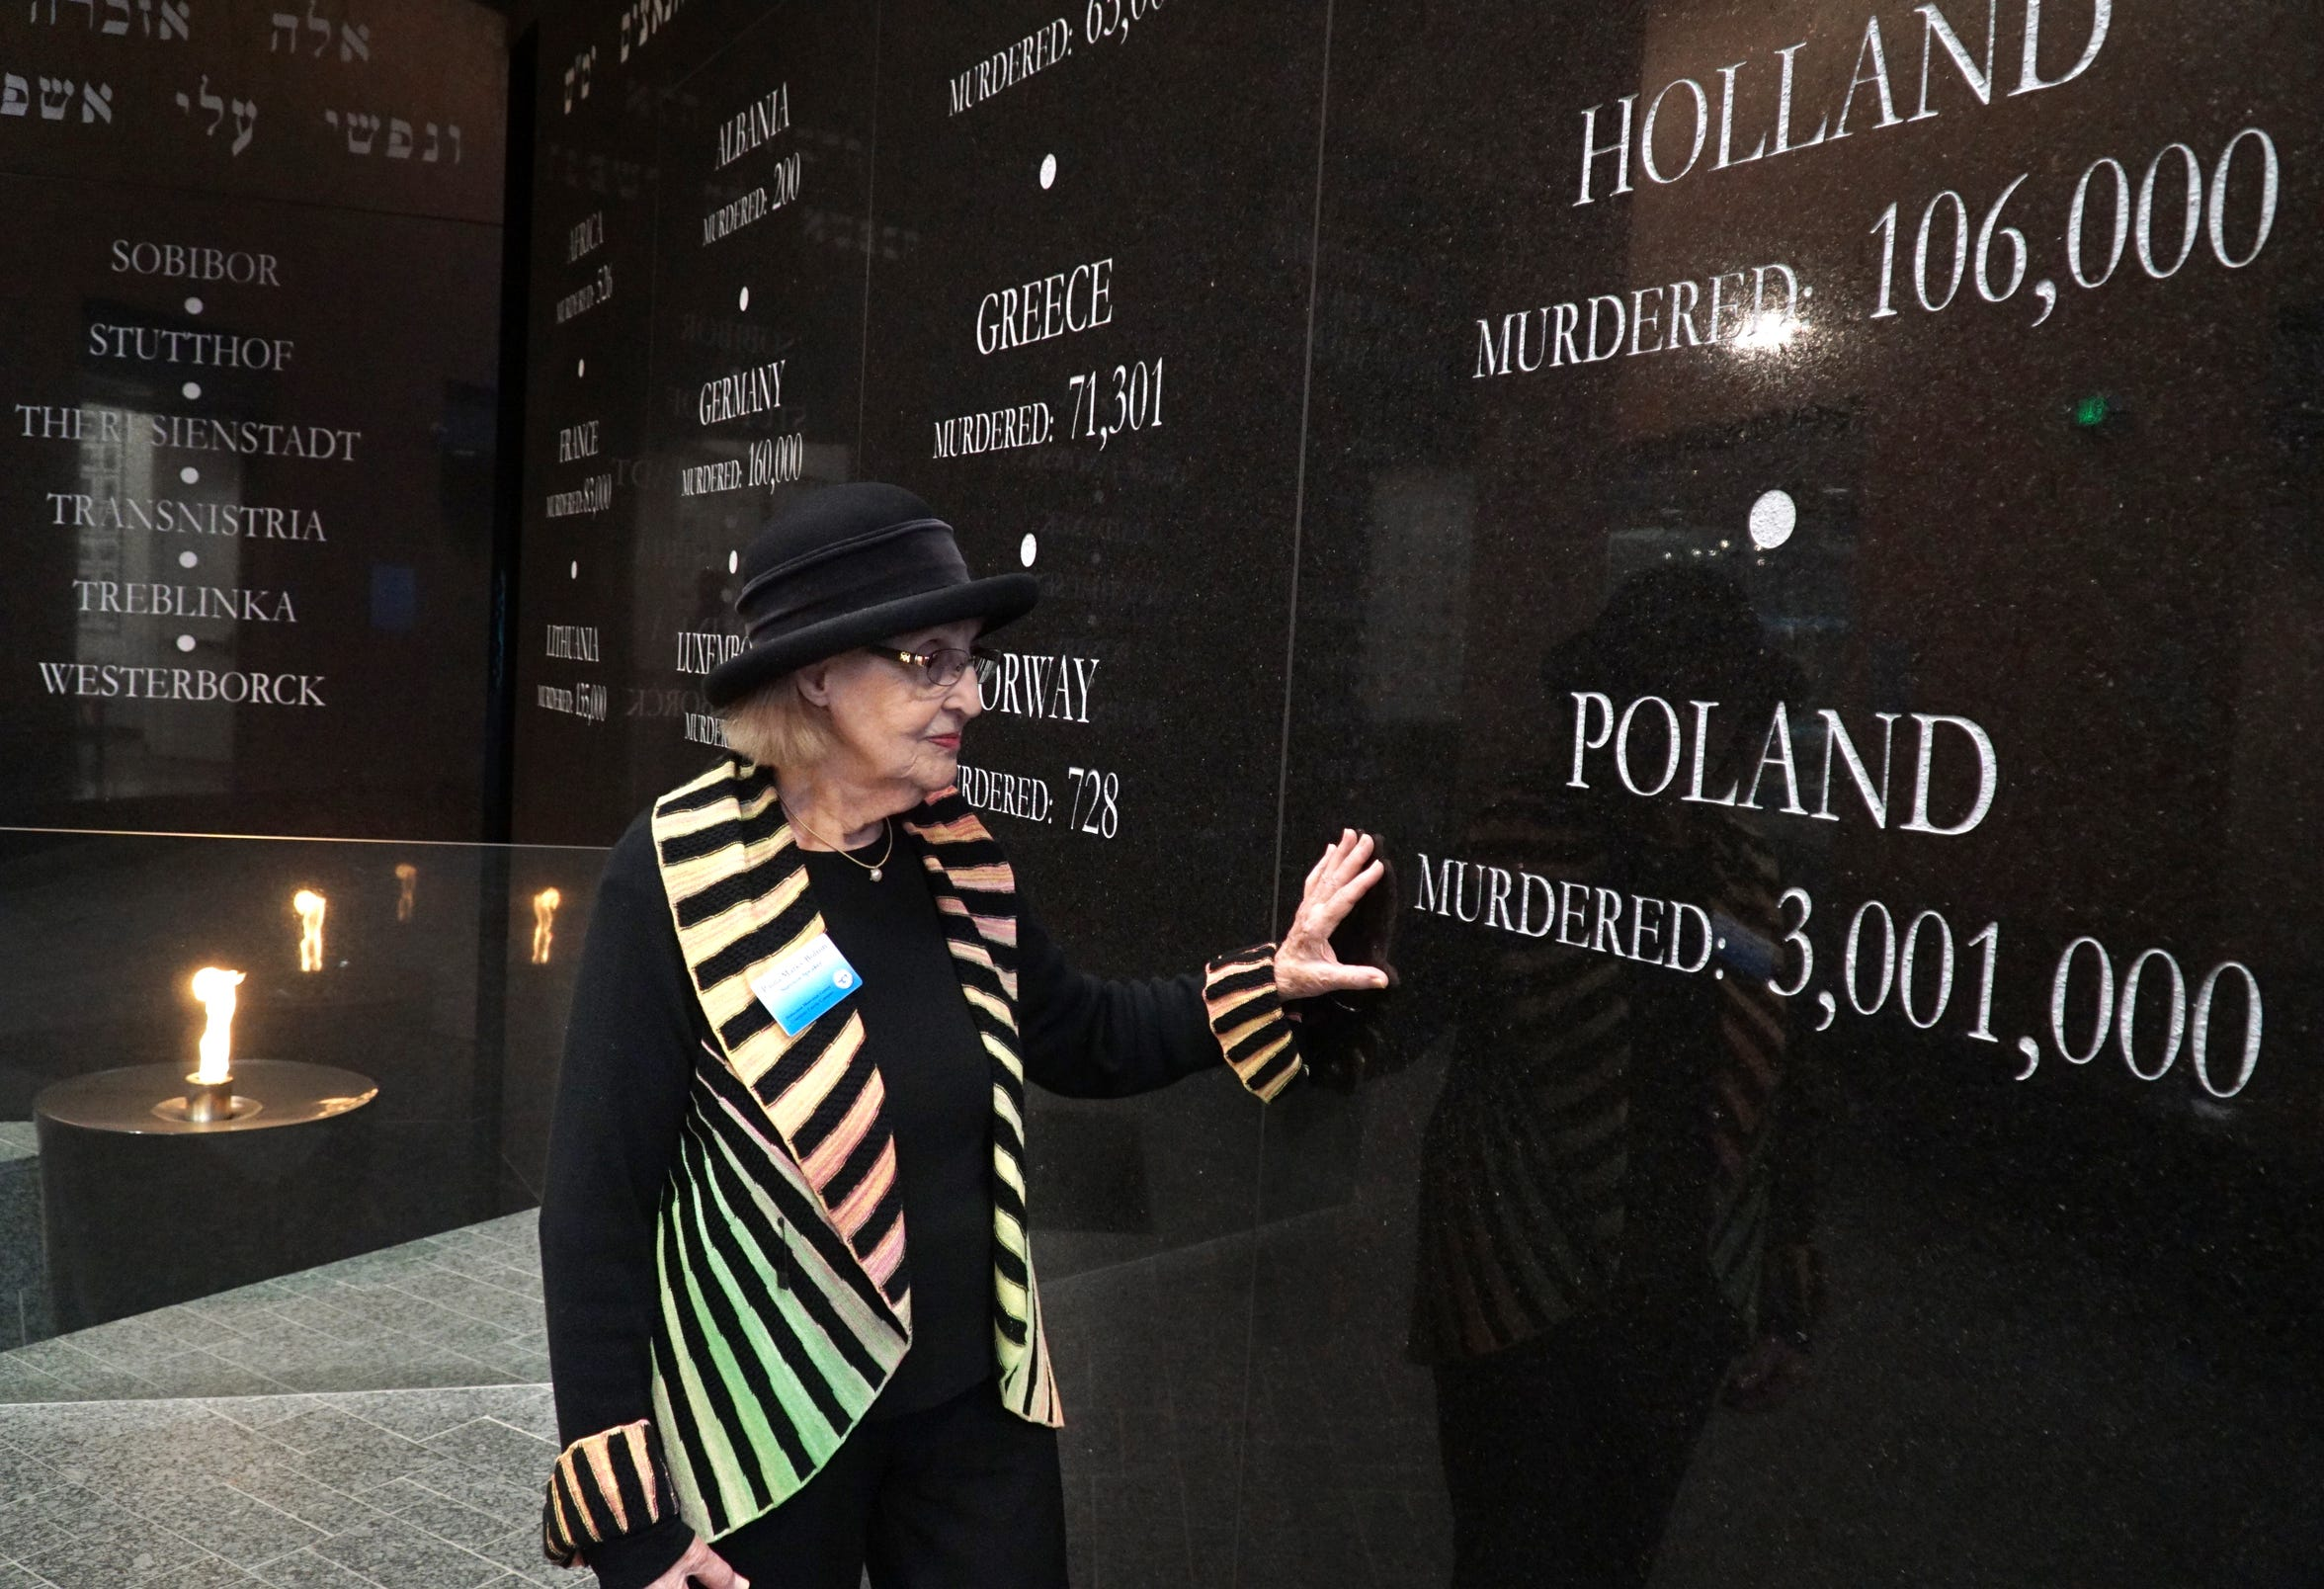 Near an eternal flame, Paula Marks-Bolton stops by an wall engraving at the Holocaust Memorial Center in Farmington Hills on Jan.14, 2020. The engraving notes how many Polish Jews perished in the Holocaust. Marks-Bolton grew up in Poland and was sent to a series of concentration camps beginning soon after she was 13 years old.